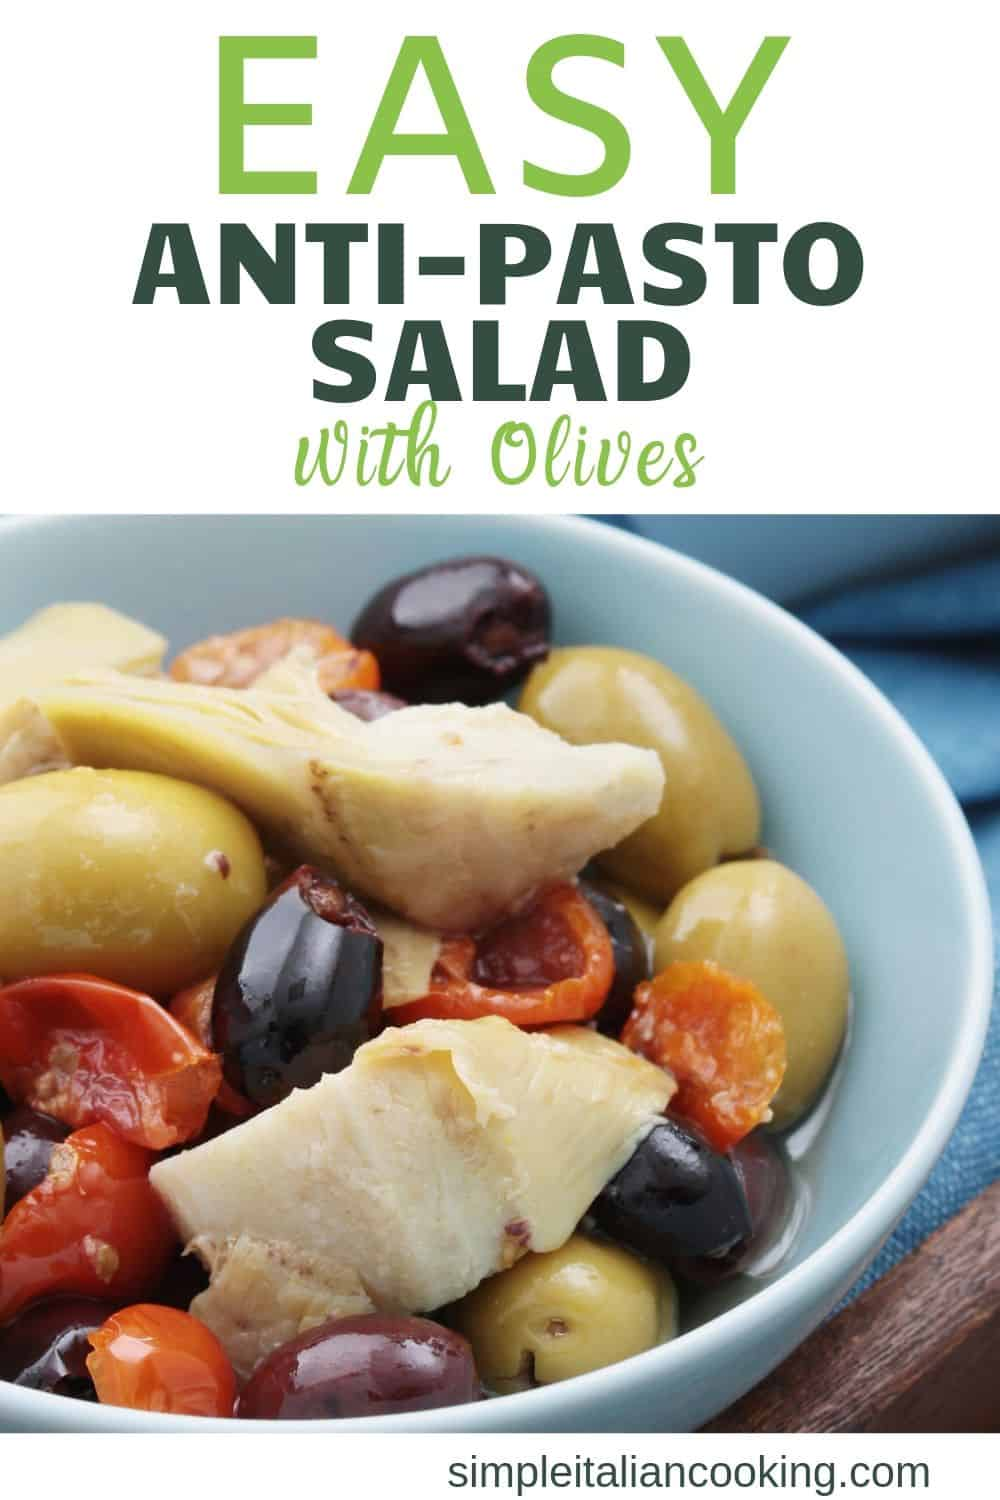 How to Make a Simple Italian Antipasto Salad